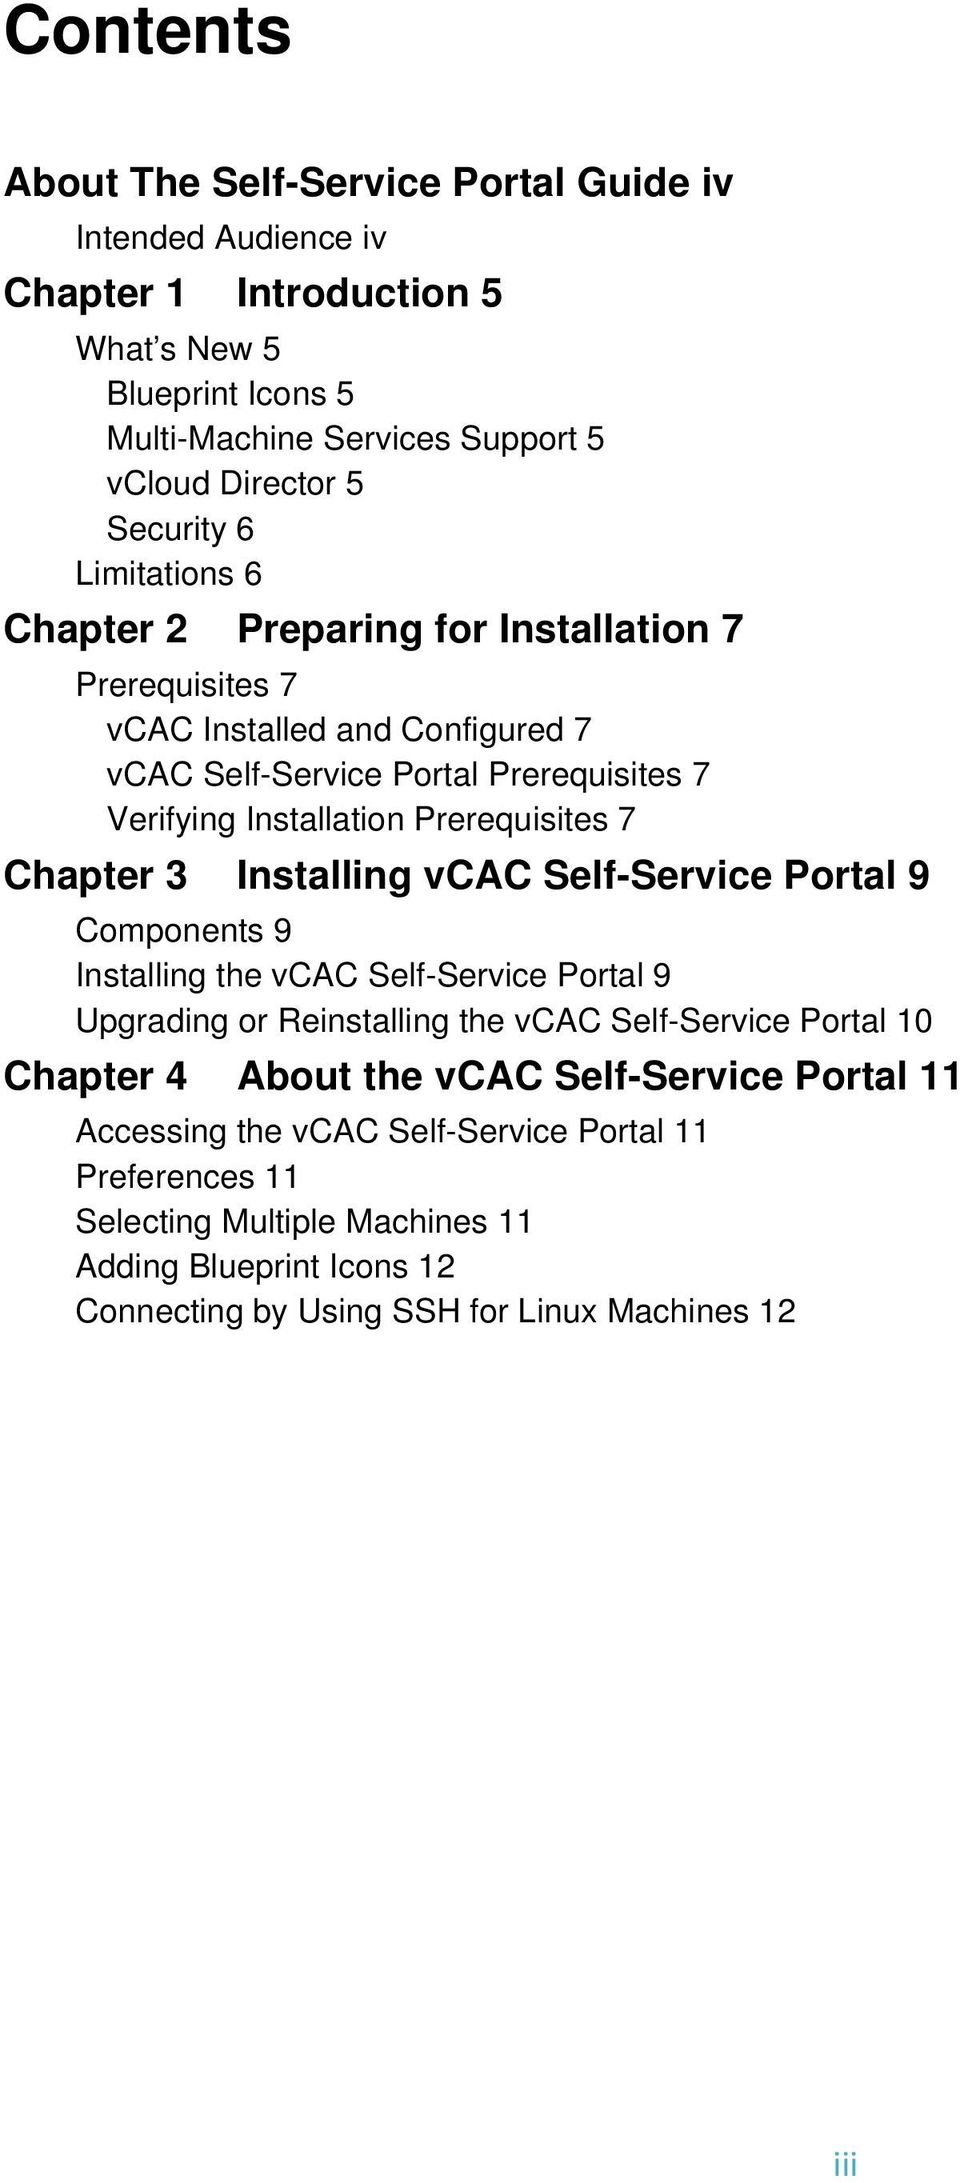 Chapter 3 Installing vcac Self-Service Portal 9 Components 9 Installing the vcac Self-Service Portal 9 Upgrading or Reinstalling the vcac Self-Service Portal 10 Chapter 4 About the